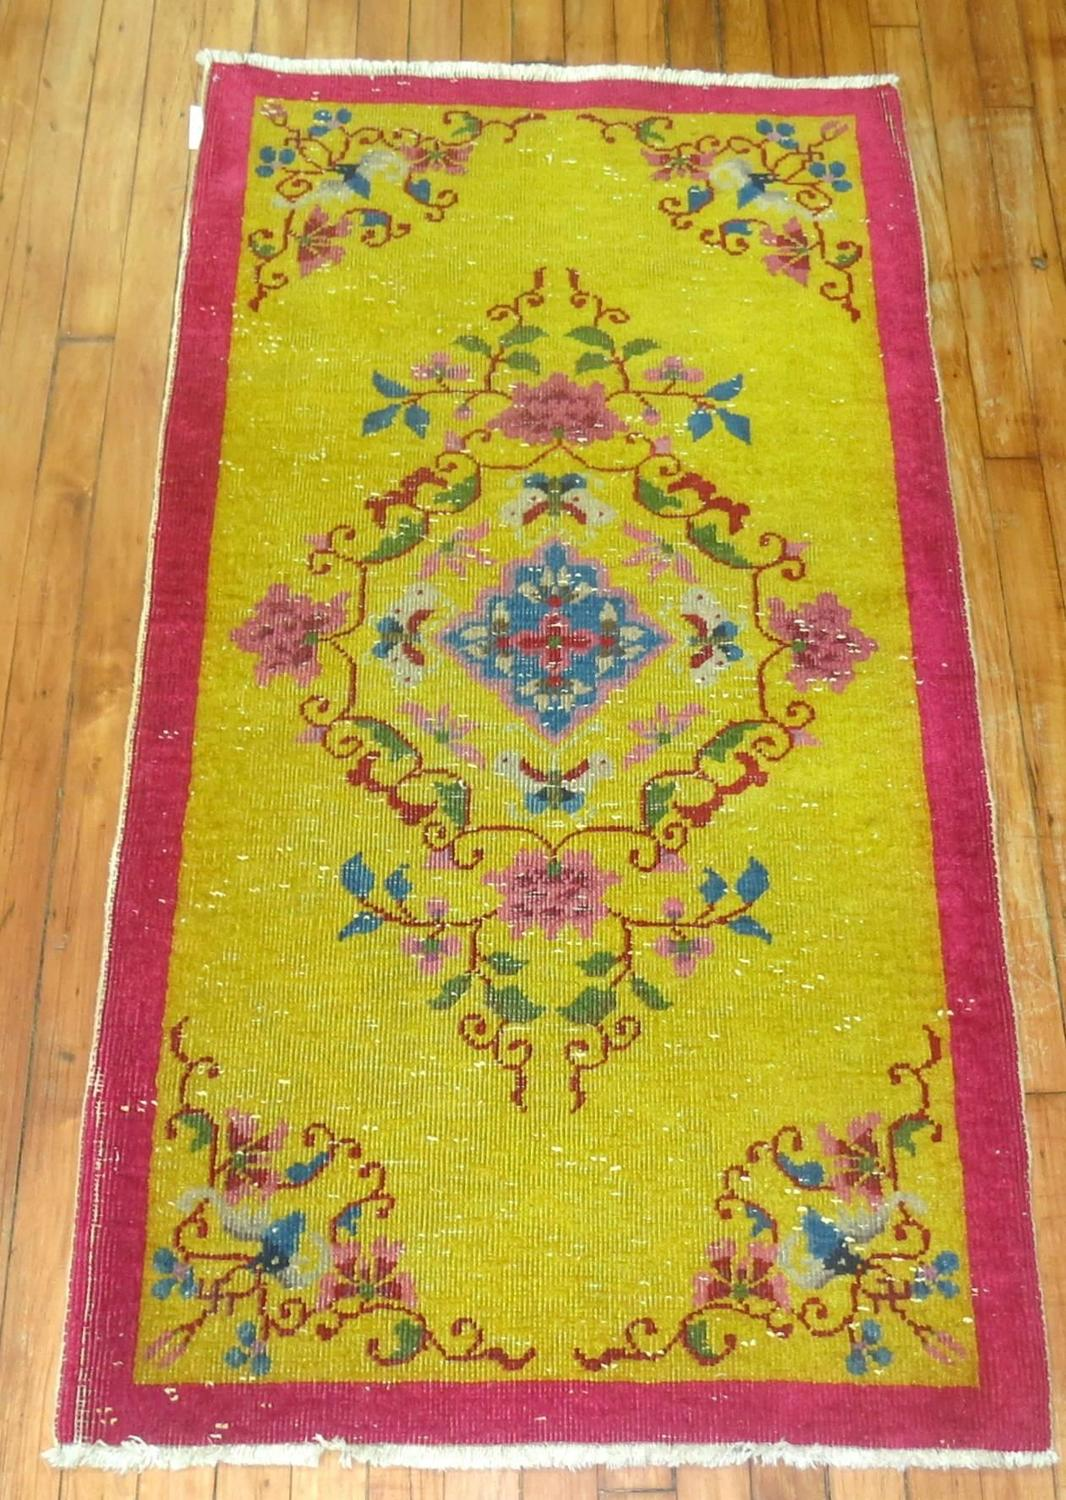 Chinese Art Deco Throw Rug In Yellow And Pink At 1stdibs